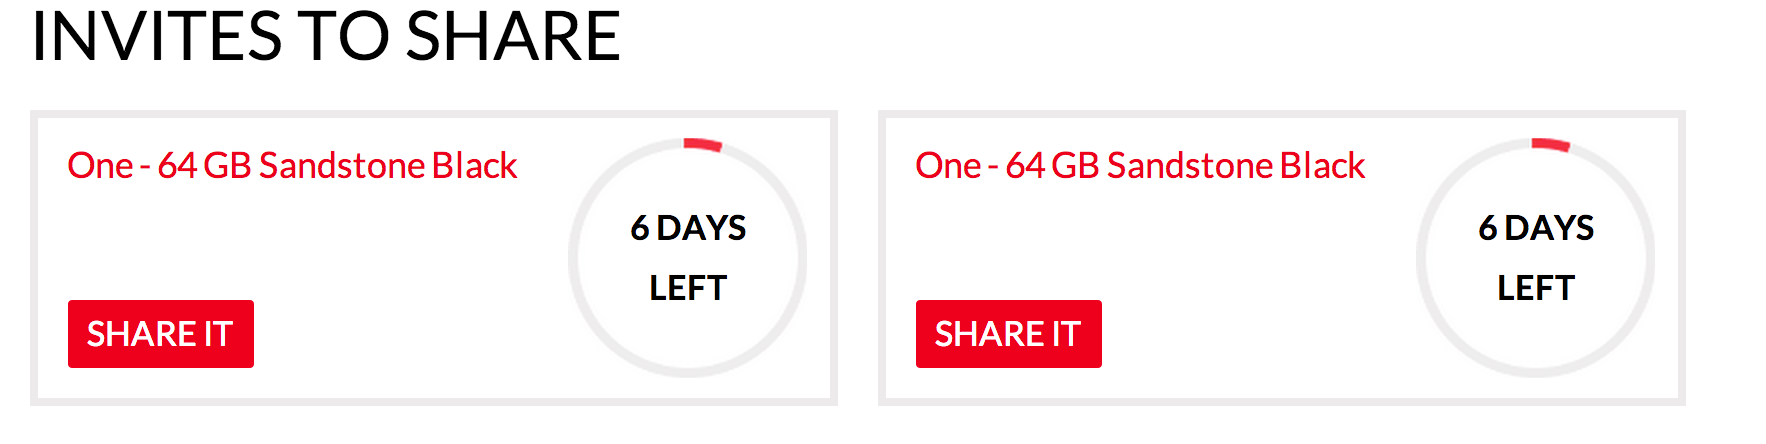 GIVEAWAY UPDATE: 2 @OnePlus One Invites